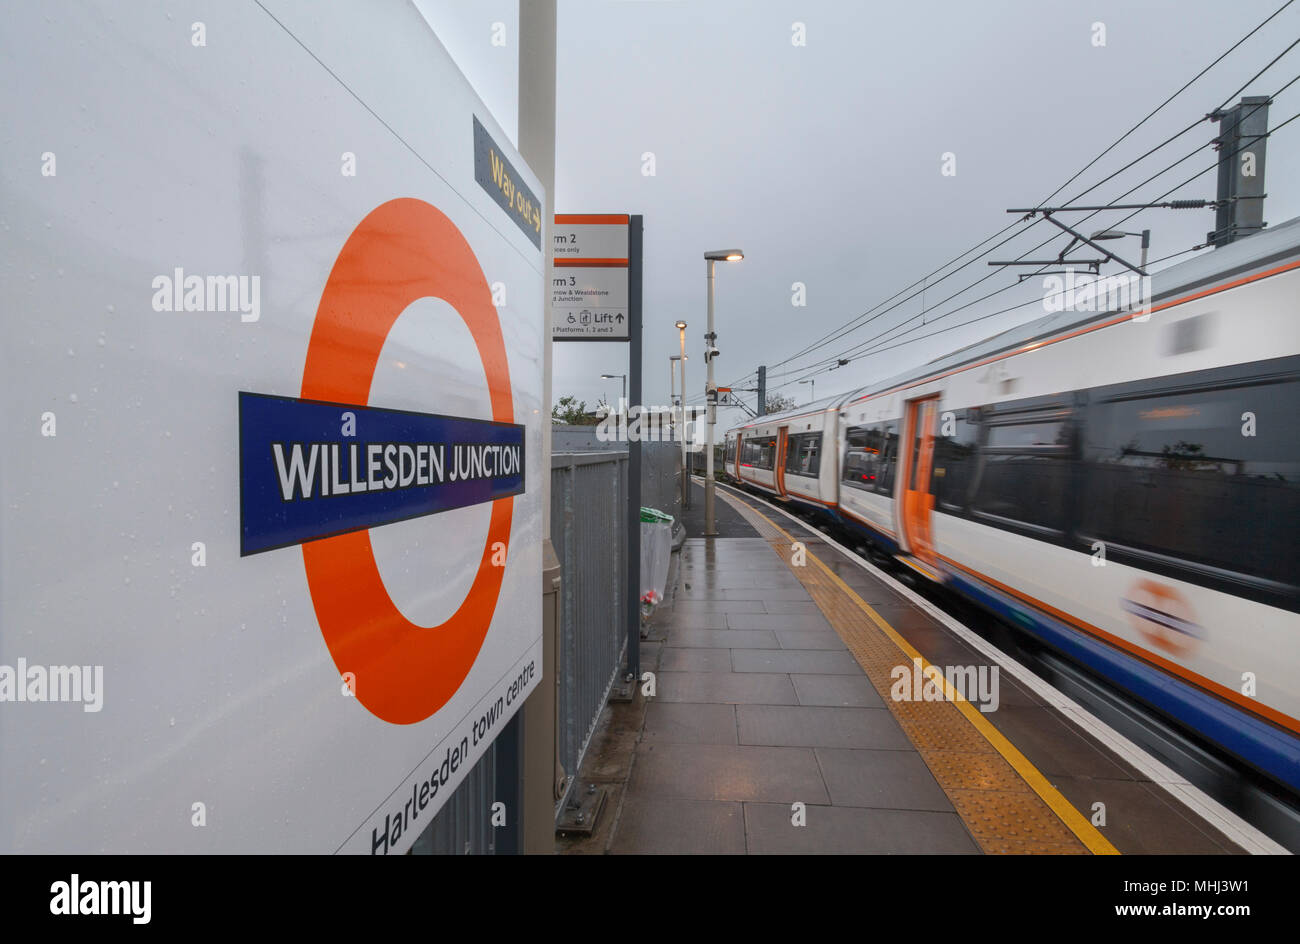 A London Overground class 378 capital star train departing Willesden Junctionn High level with the station sign and overground logo - Stock Image